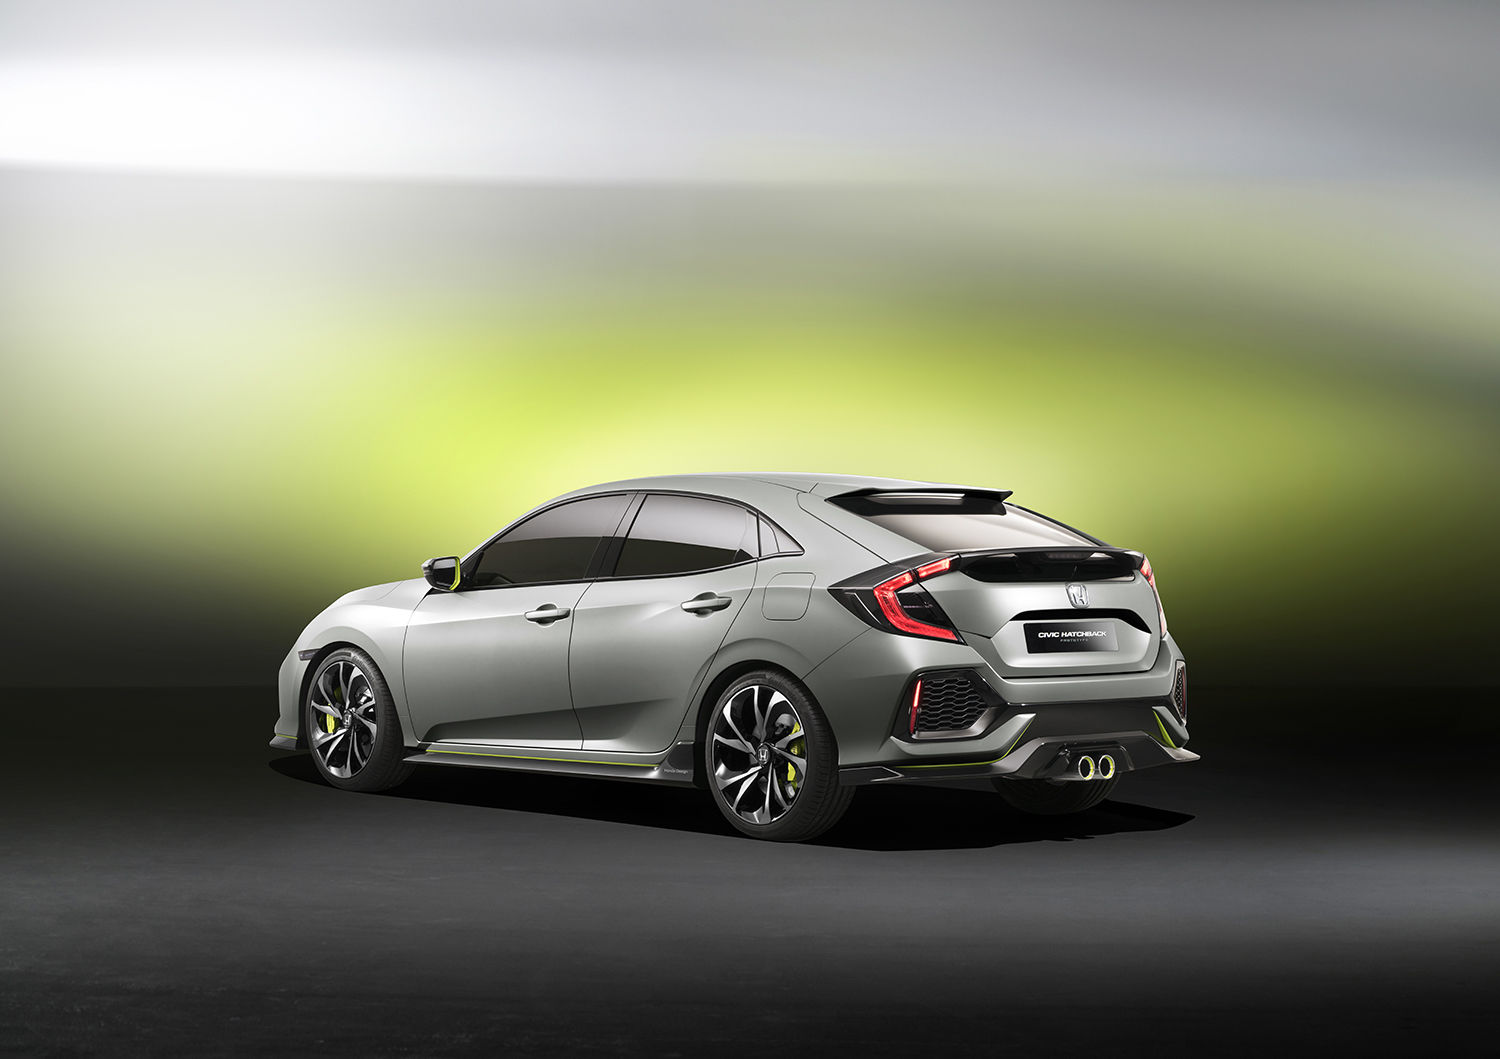 Honda Civic Hatchback Prototype to Make North American Debut in NY